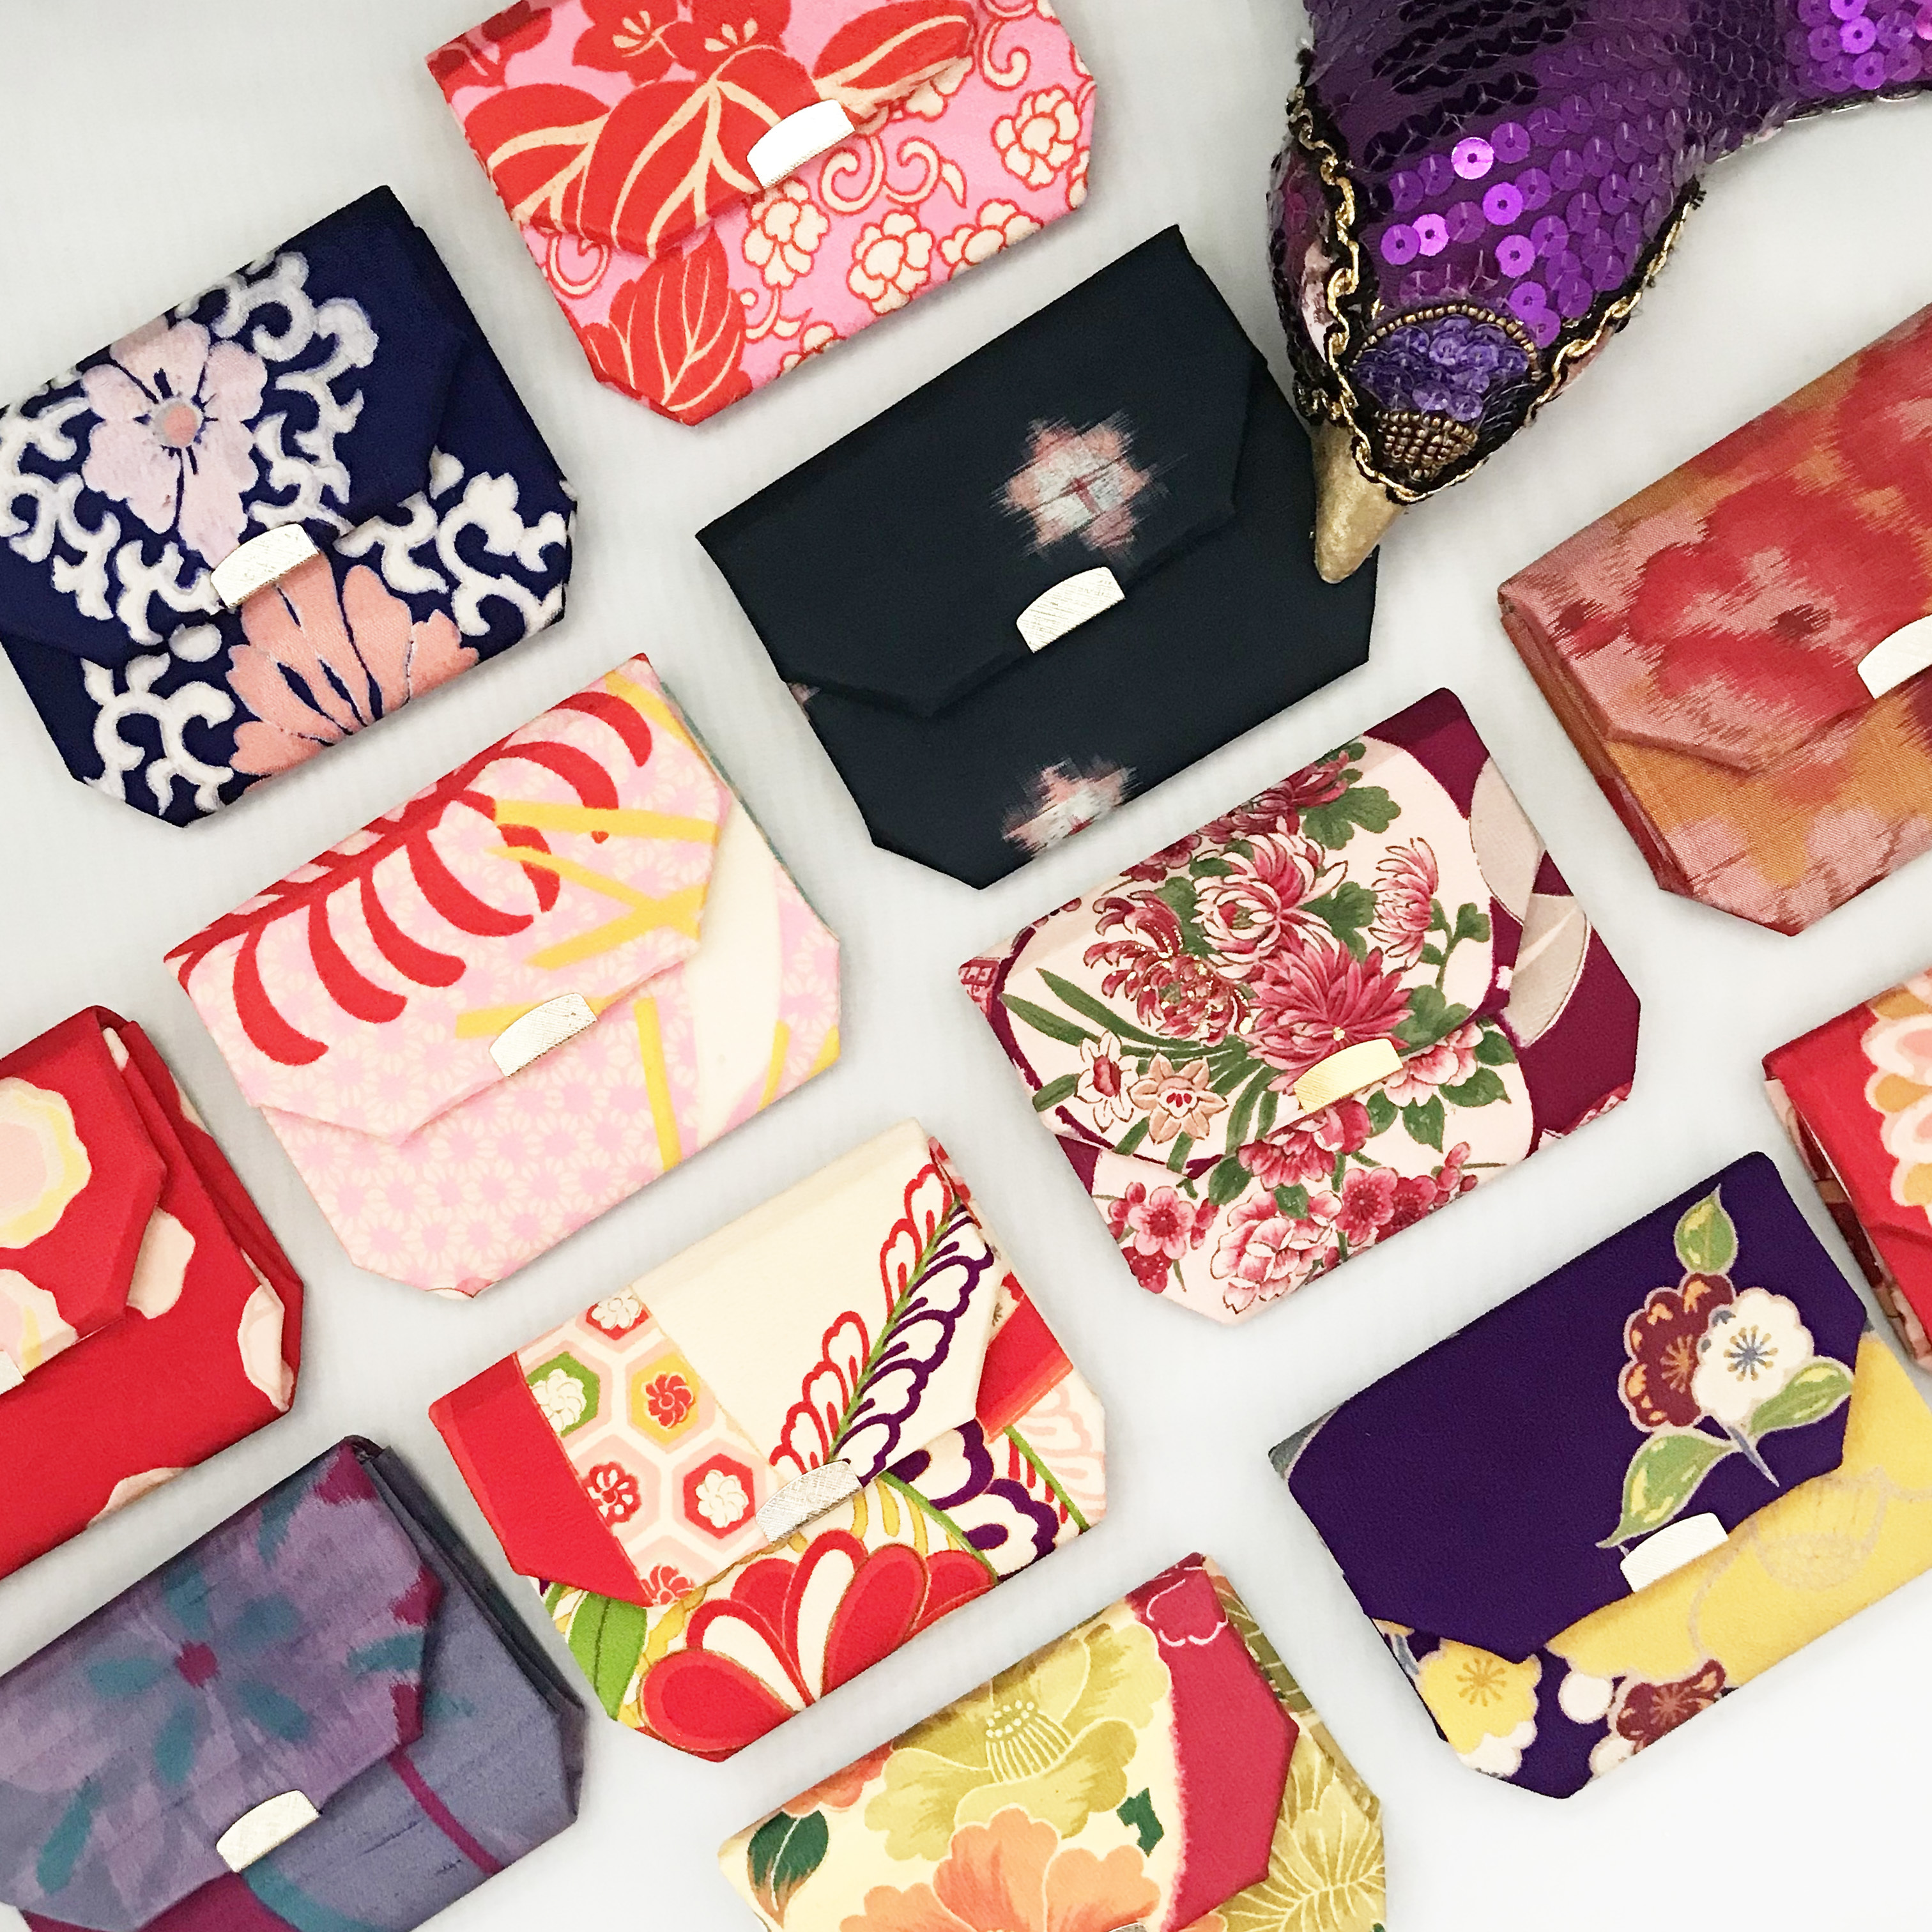 Popping Wallet (packet size)  〜折り財布〜